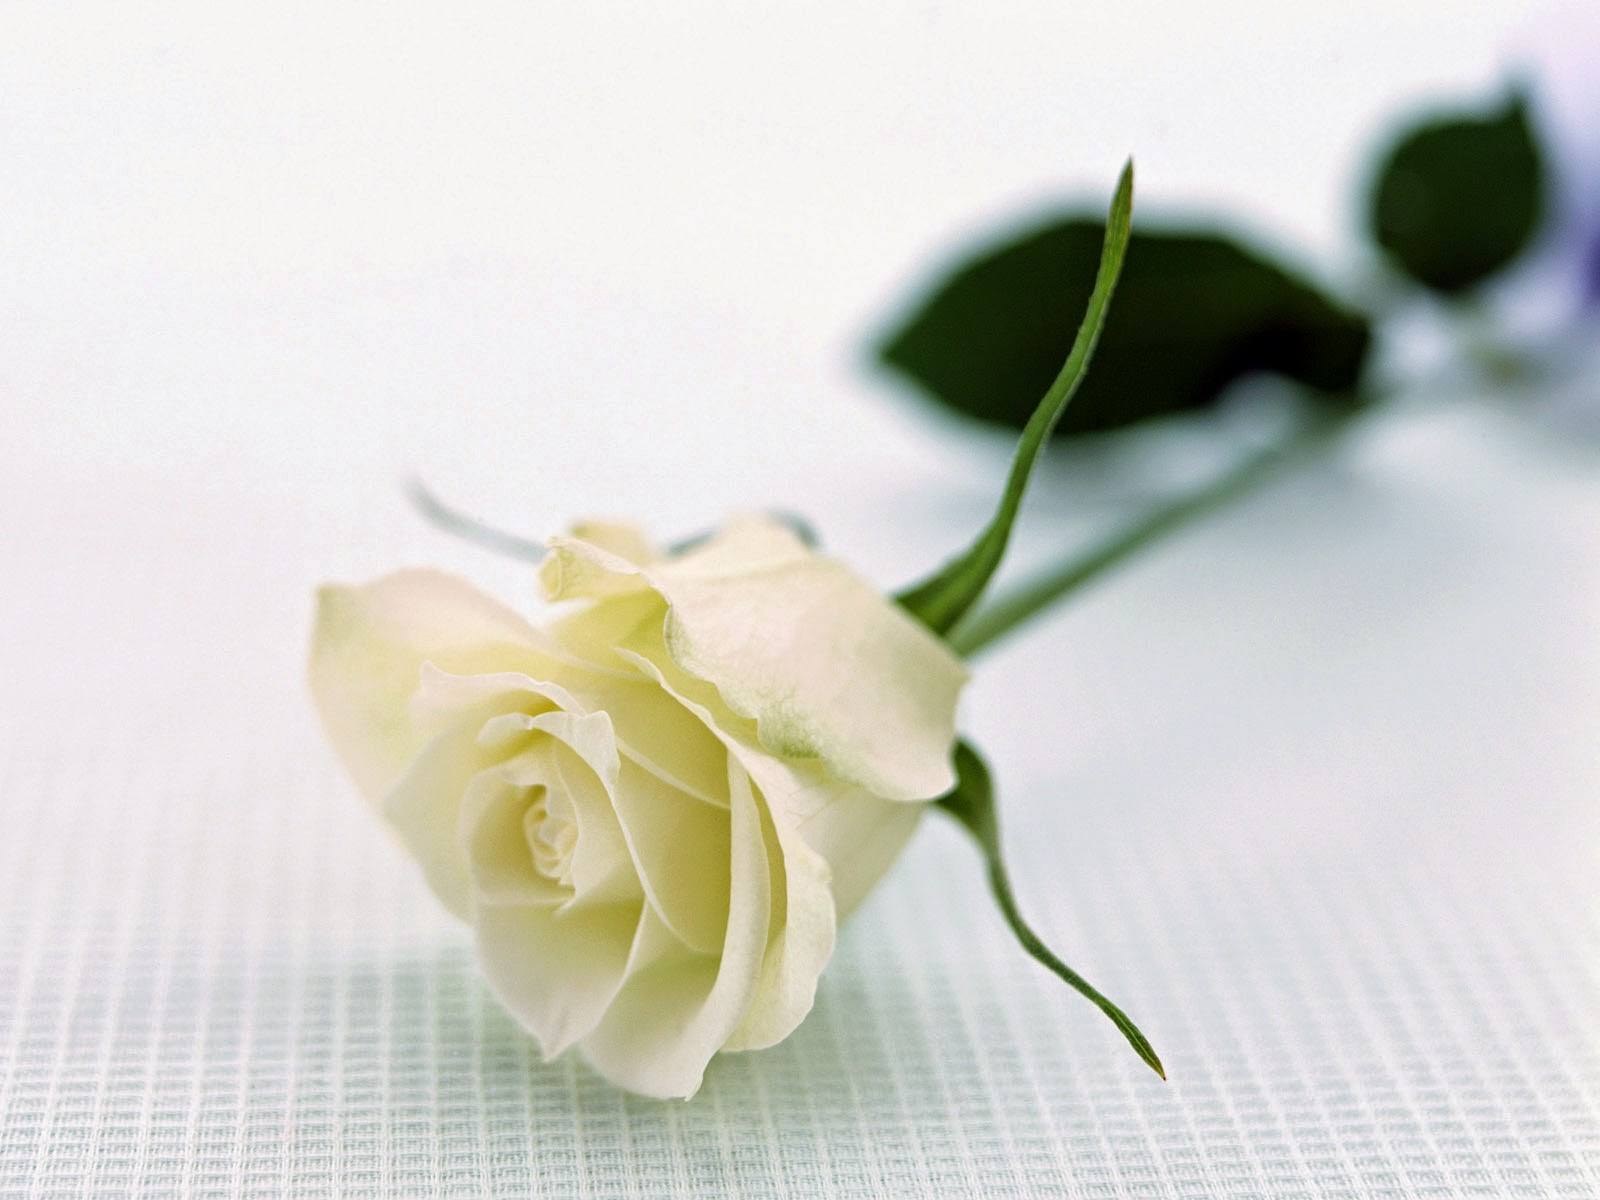 Romantic flowers white rose meaning white rose meaning mightylinksfo Images